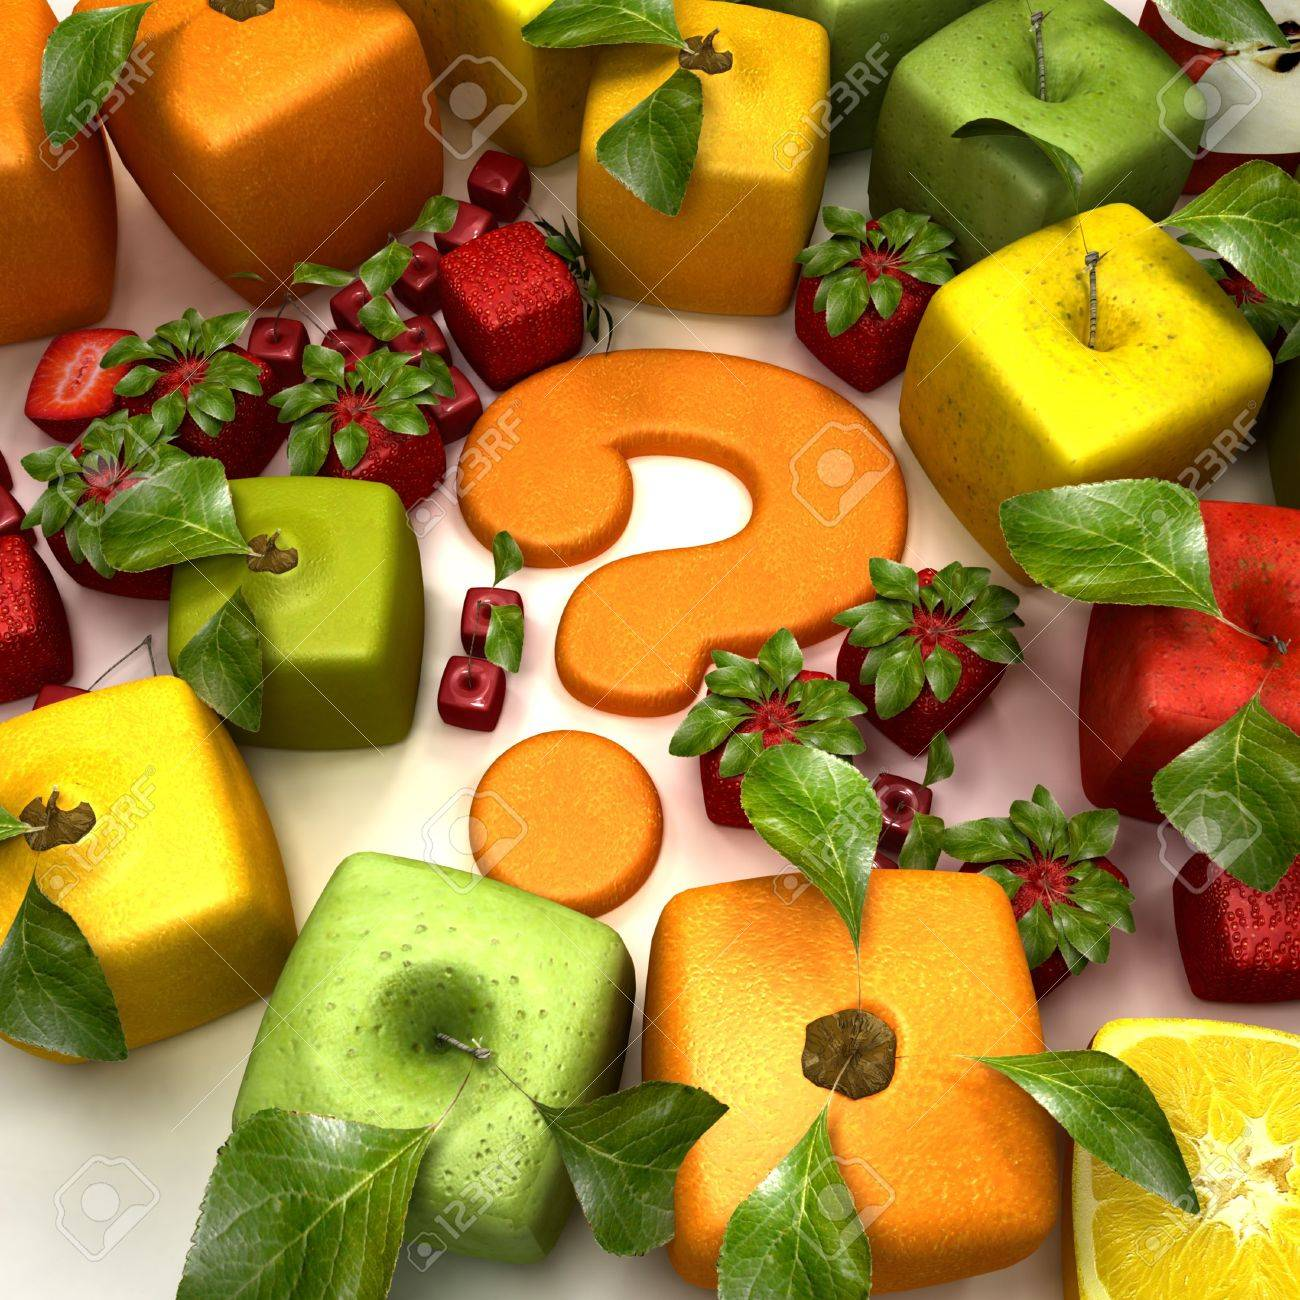 3D rendering of a selection of cubic fruits surrounding a question mark Stock Photo - 5527926